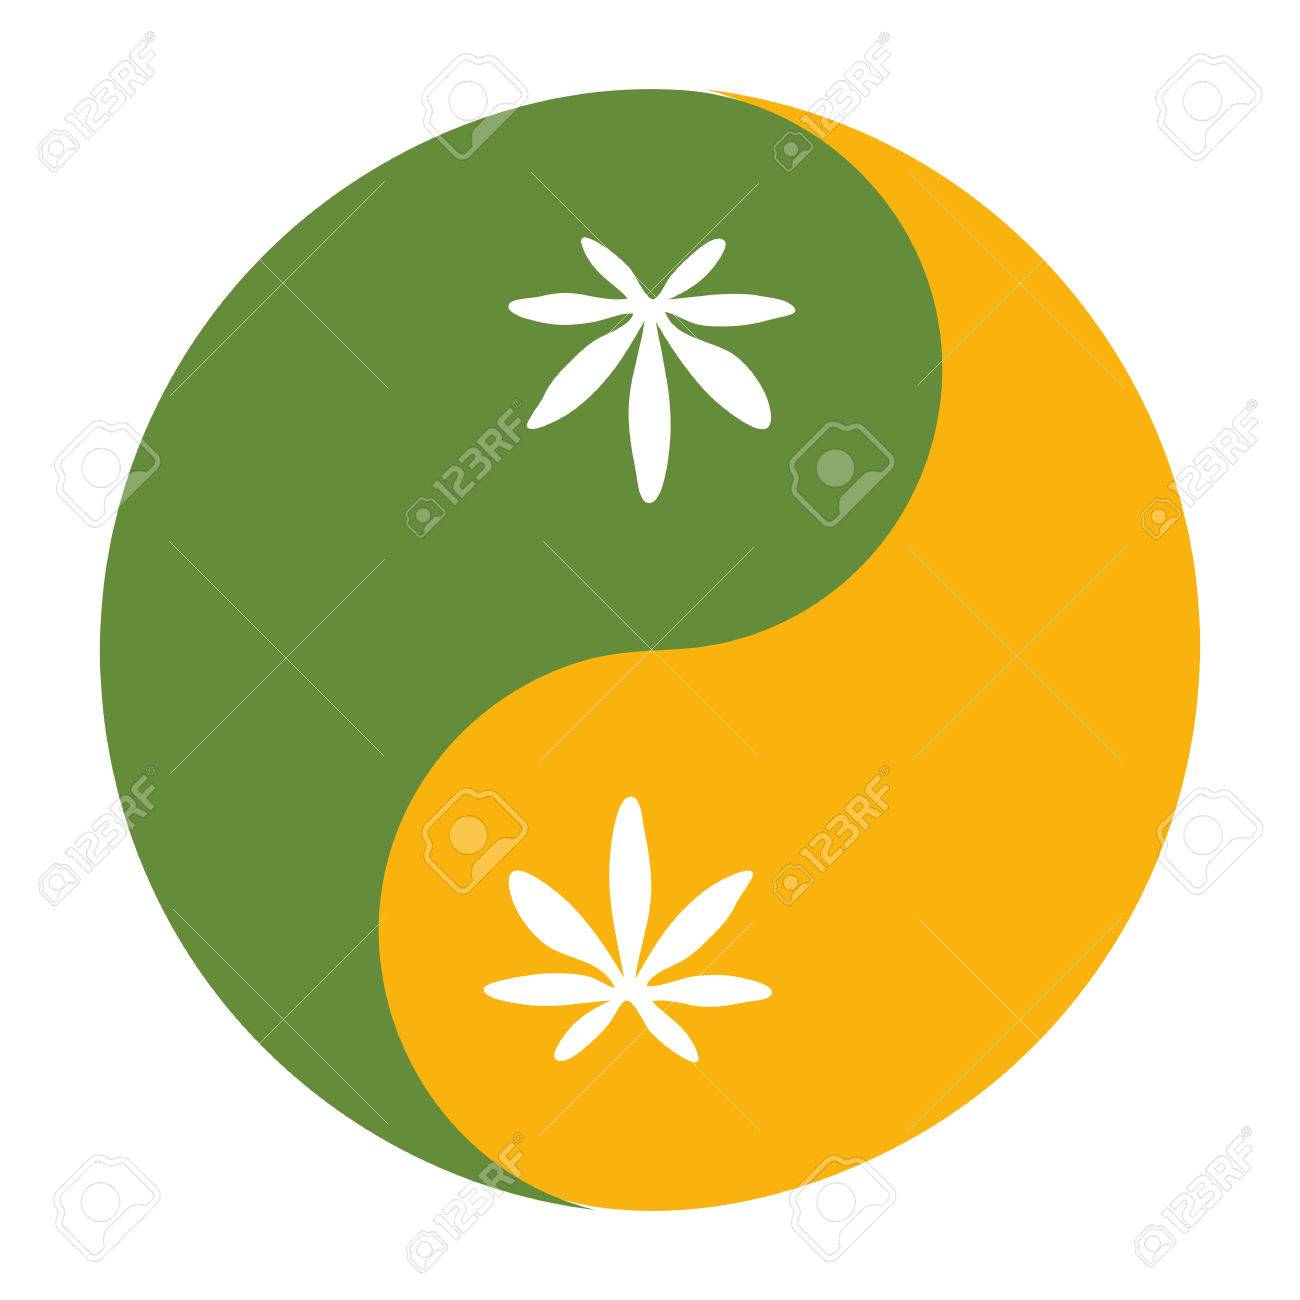 Yin And Yang Symbol Also Known As Taijitu As A Symbol Of Harmony